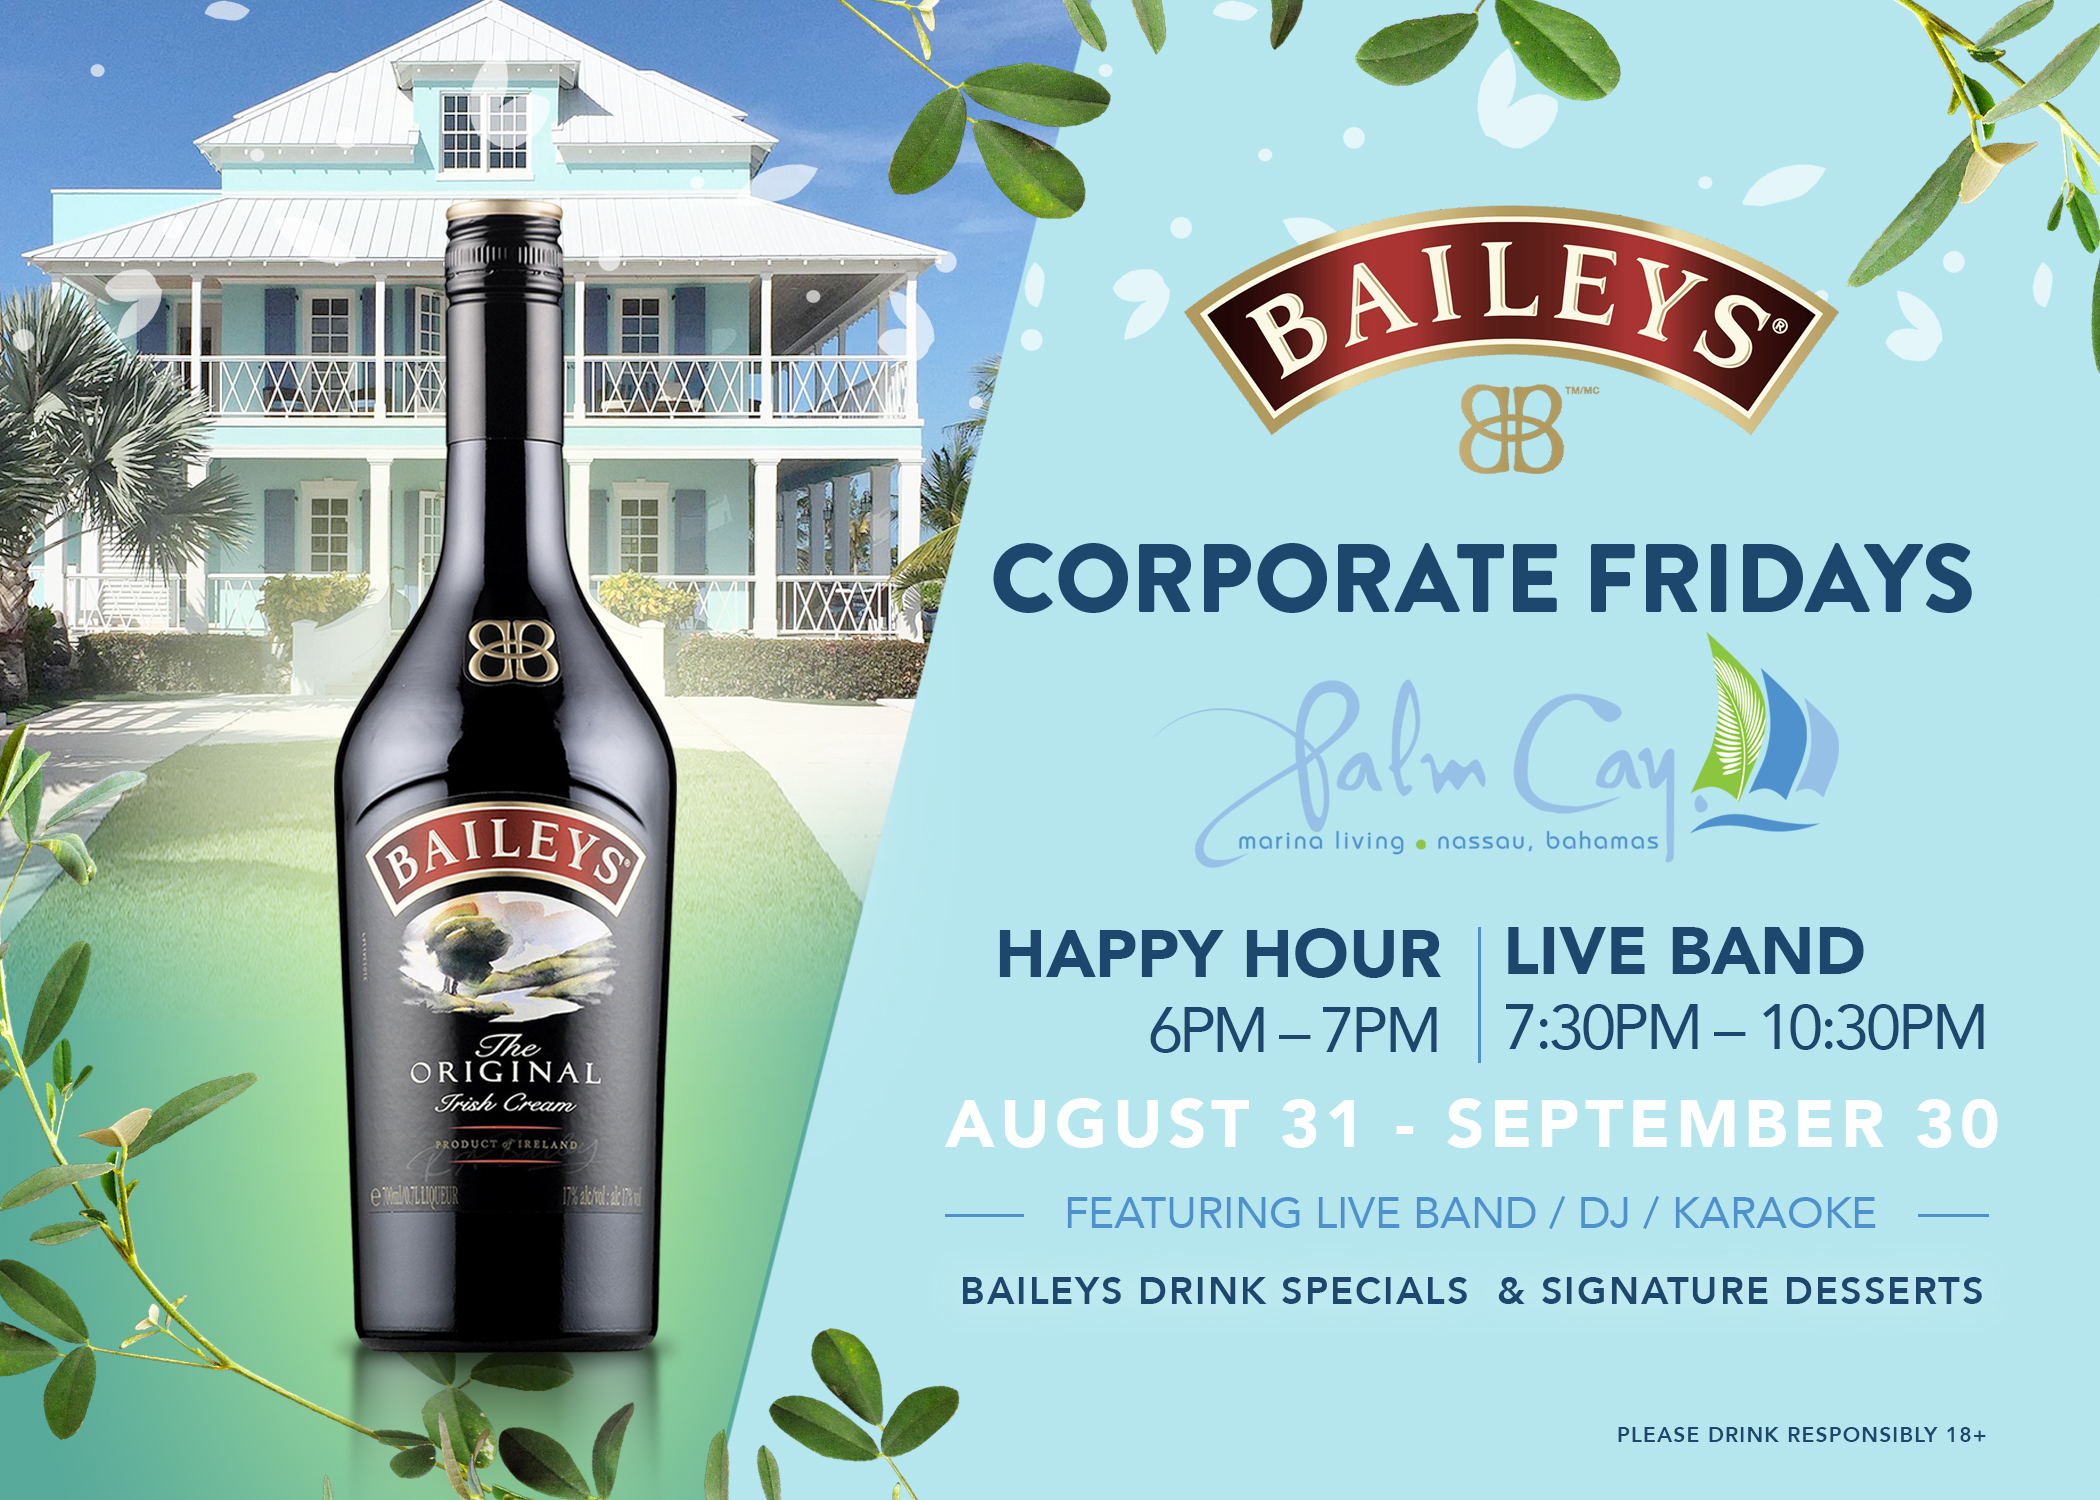 Baileys Corporate Fridays at Palm Cay